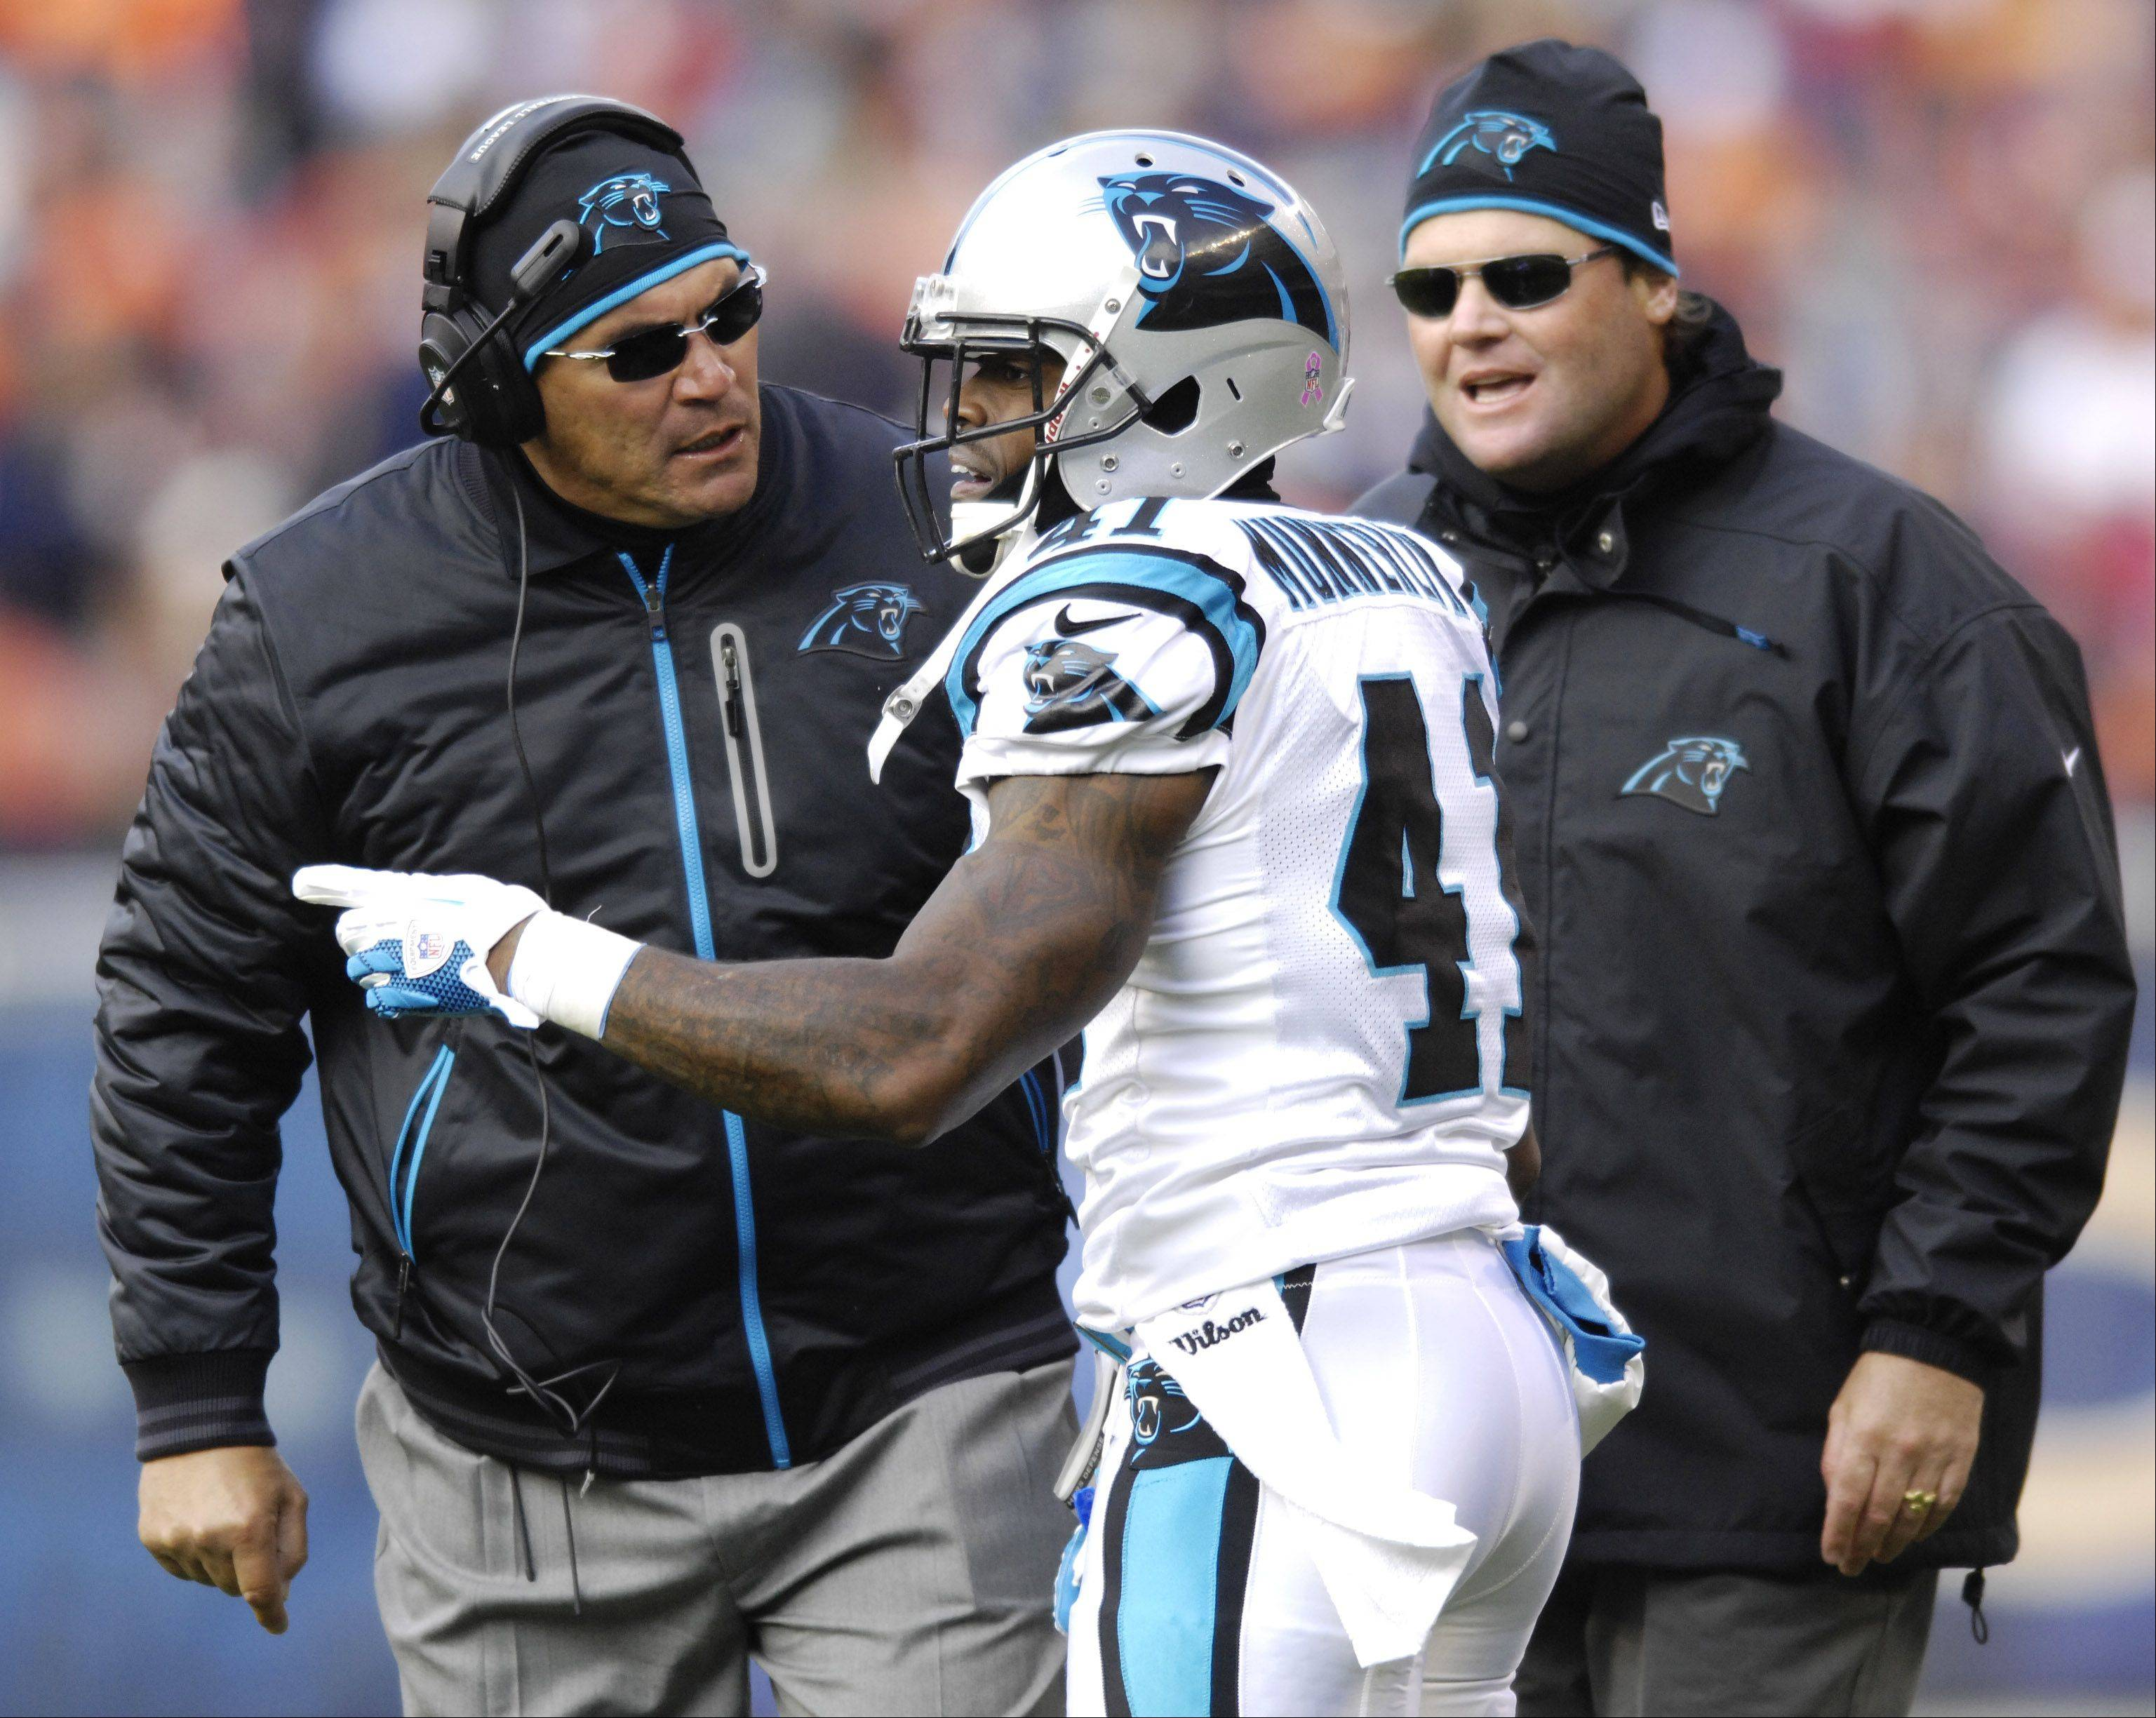 Carolina Panthers head coach Ron Rivera, left, talks with Carolina Panthers cornerback Captain Munnerlyn during Sunday�s game against the Bears at Soldier Field.